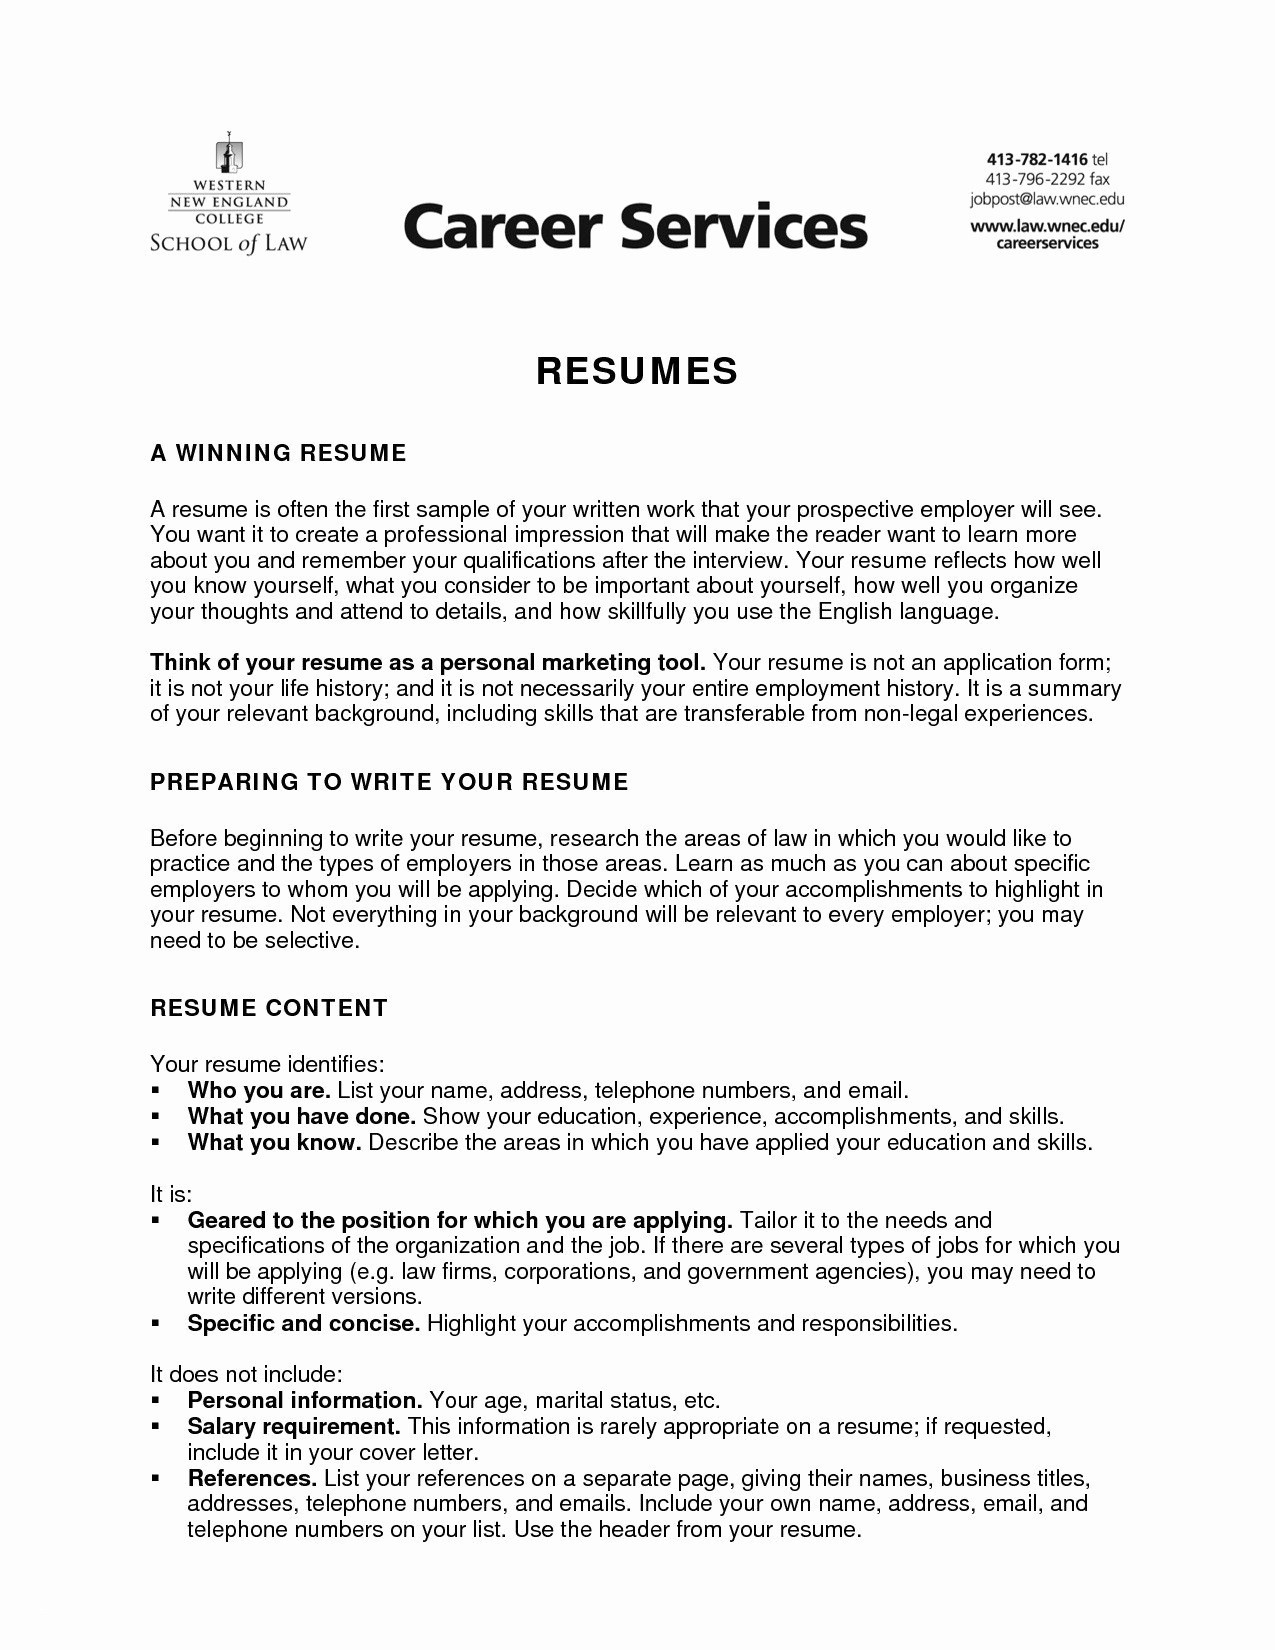 Law Firm Letter Template - Practice Resume Templates Valid Best Resume Sample Fresh Uline